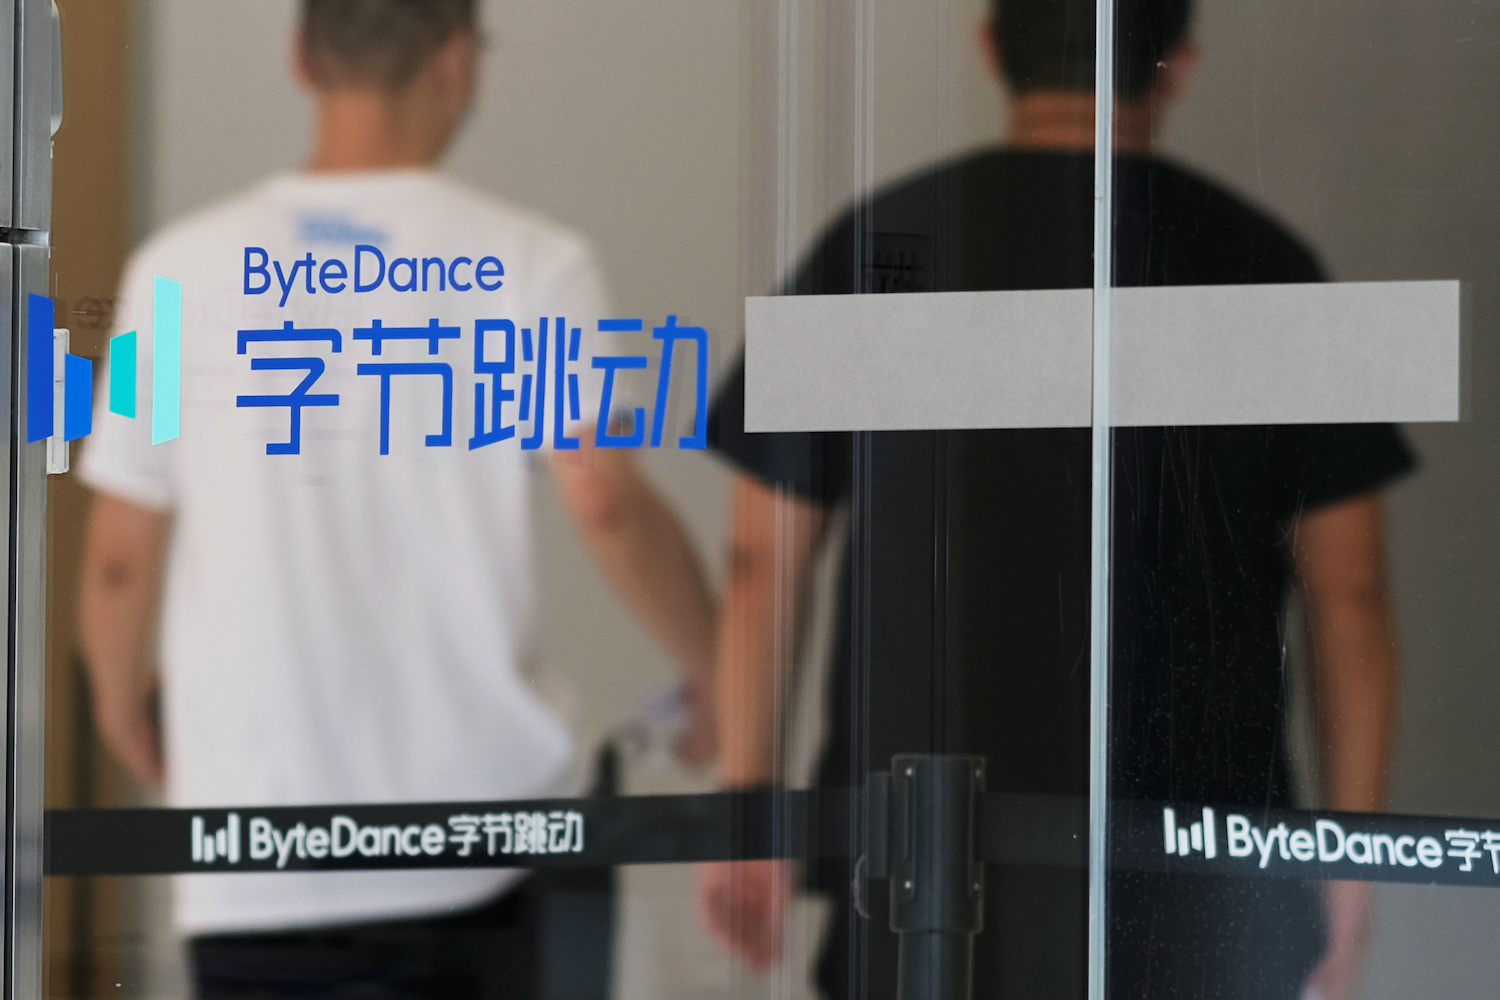 ByteDance valuation soars to $400bn as IPO talk intensifies